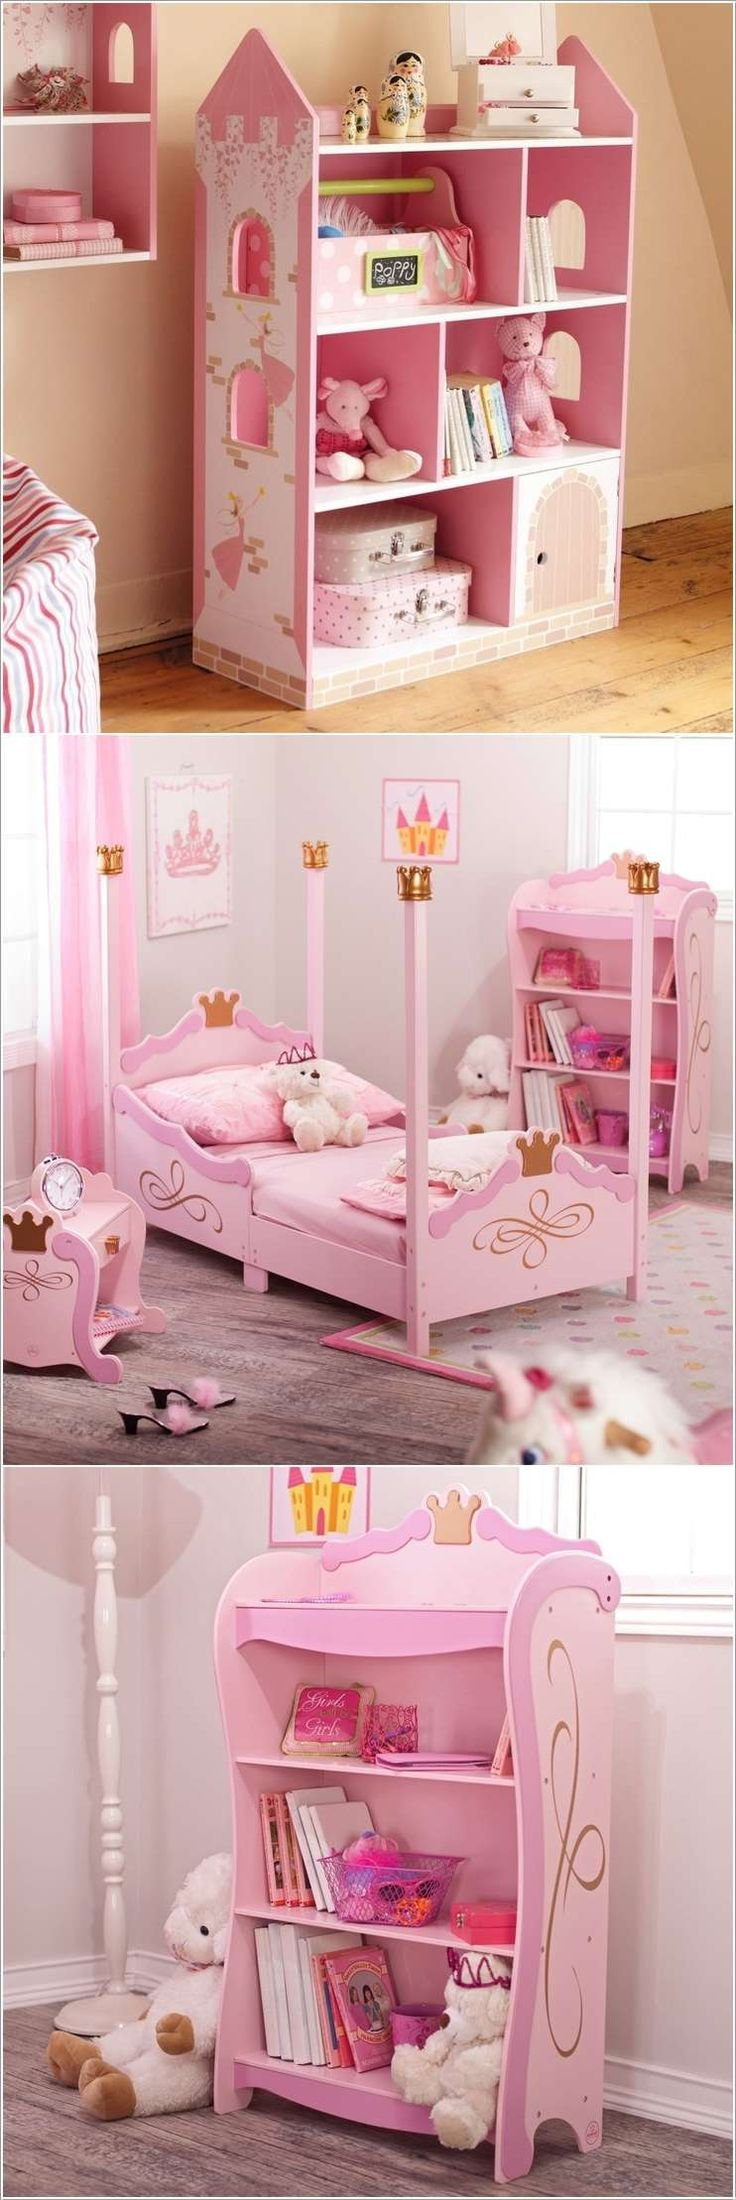 25+ best Girls princess room ideas on Pinterest | Princess room ...